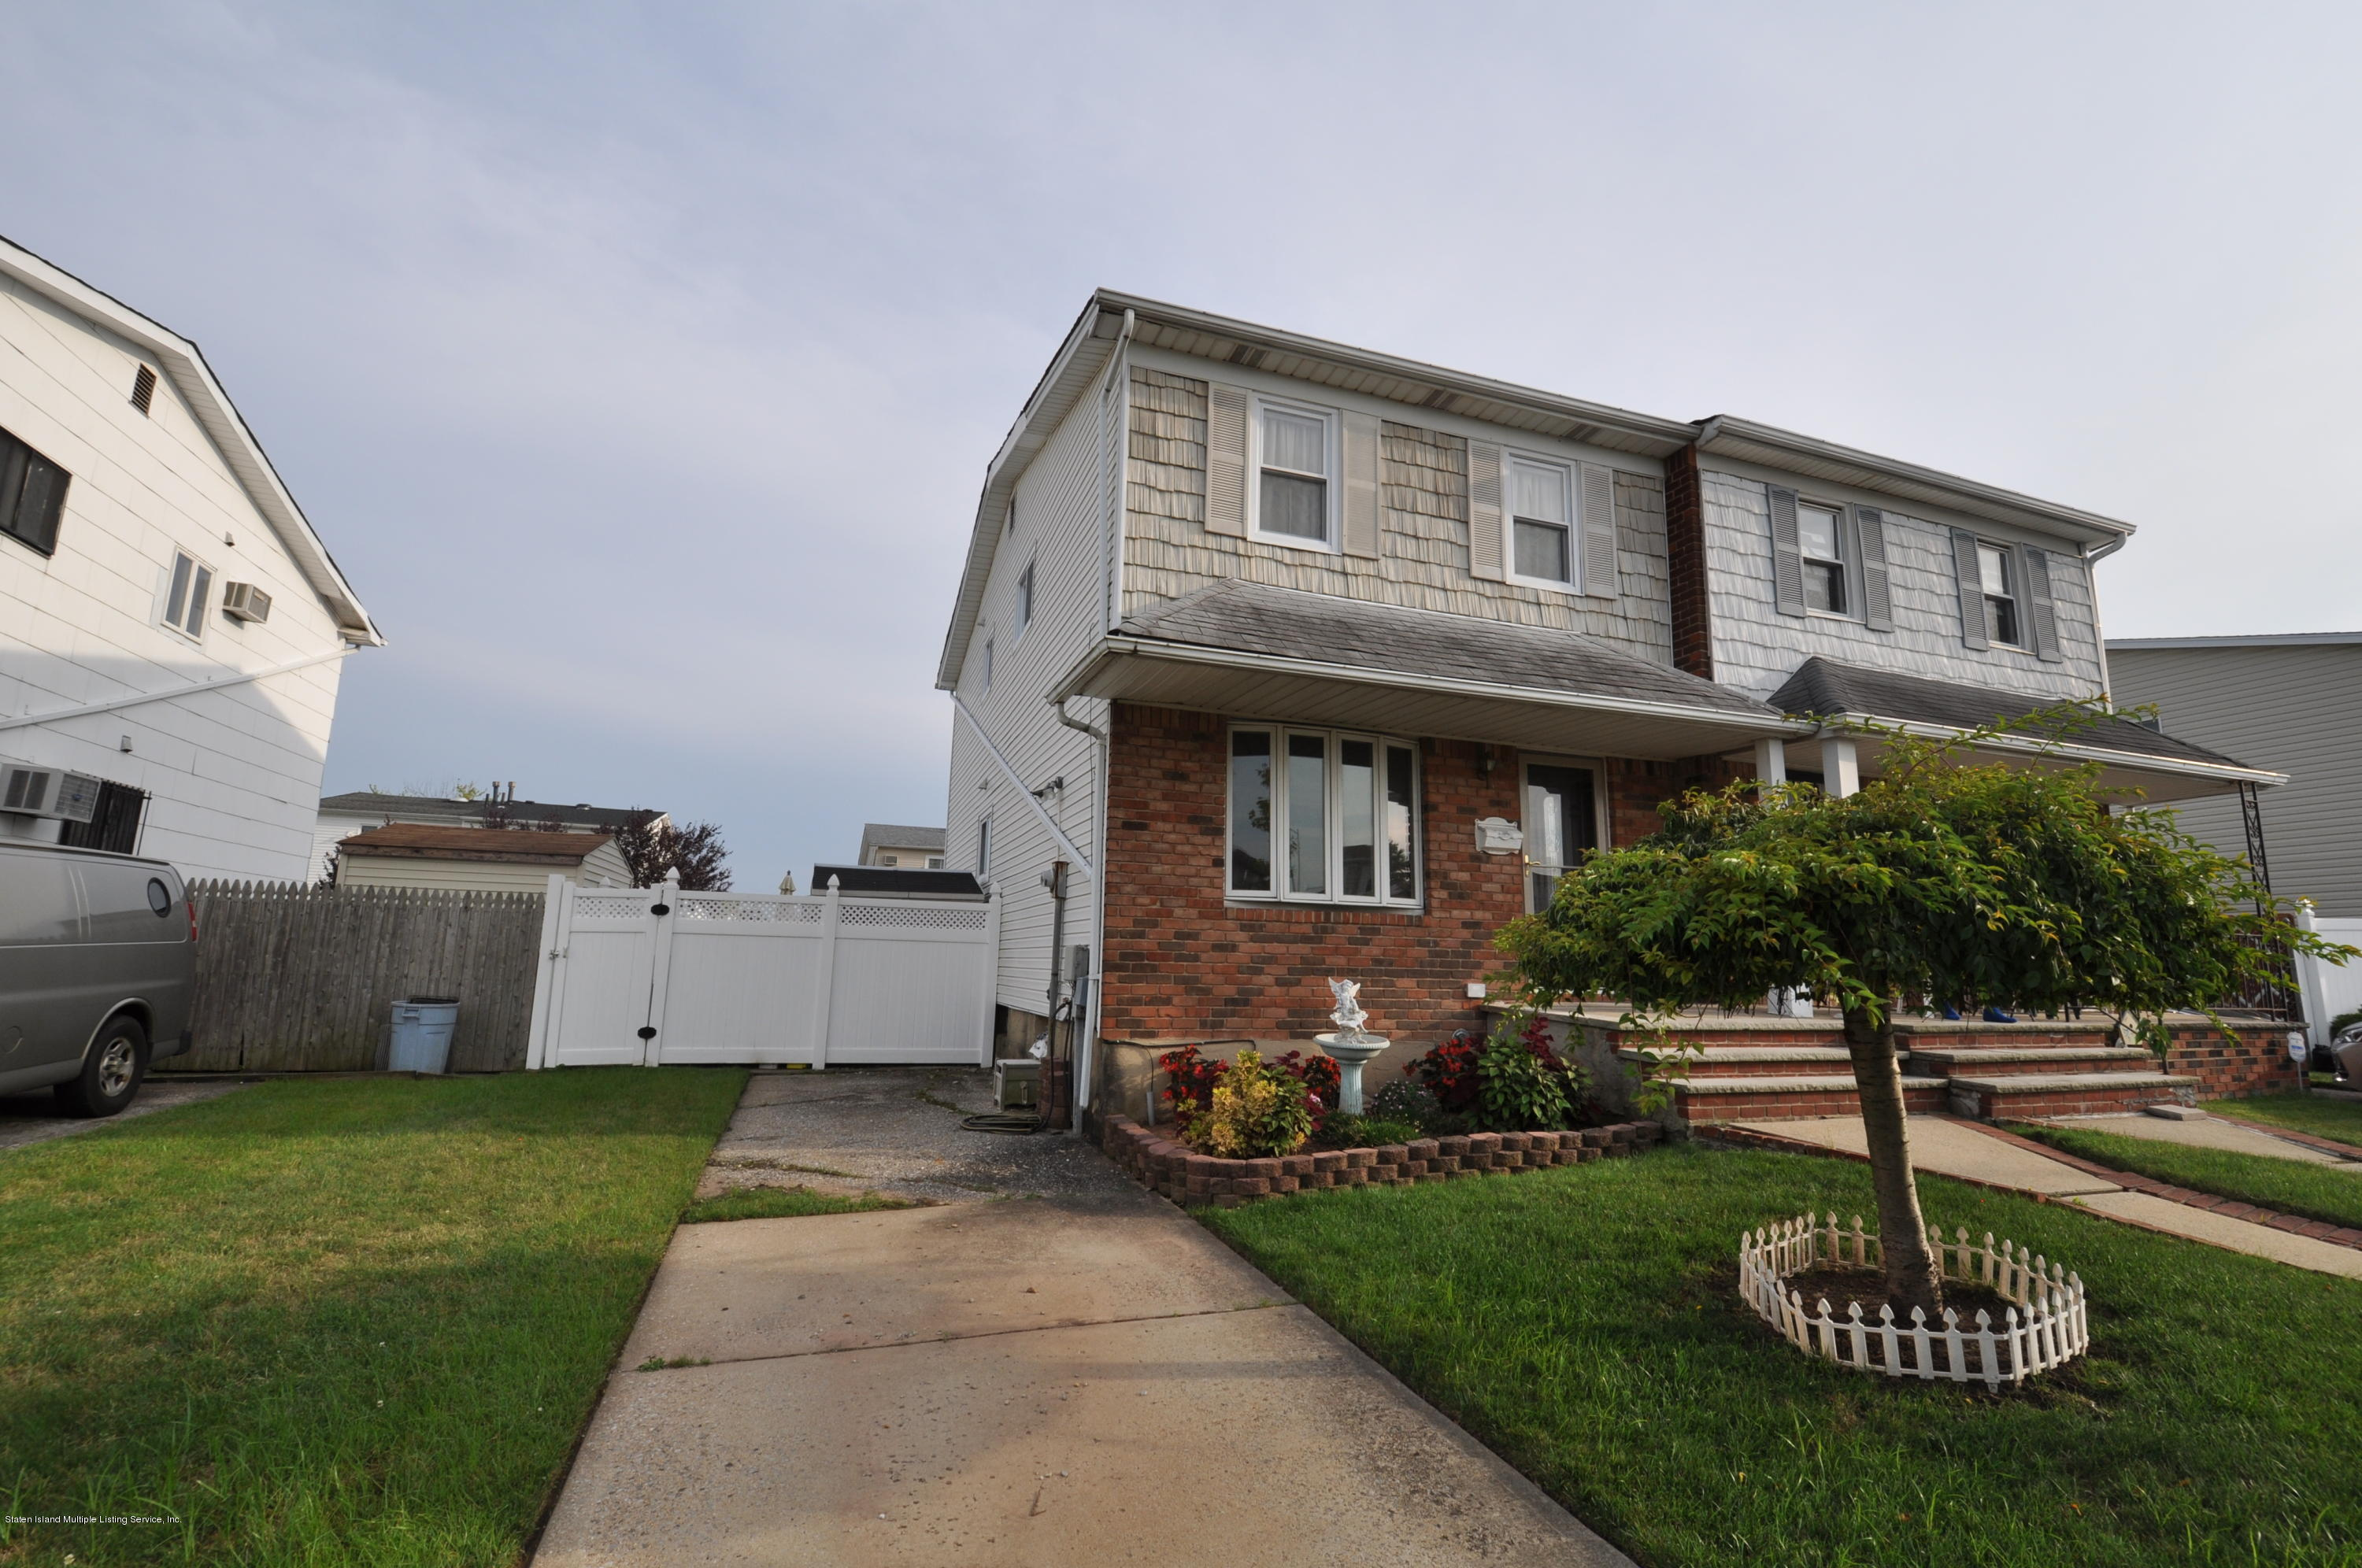 Single Family - Semi-Attached 78 Token Street  Staten Island, NY 10312, MLS-1131219-2